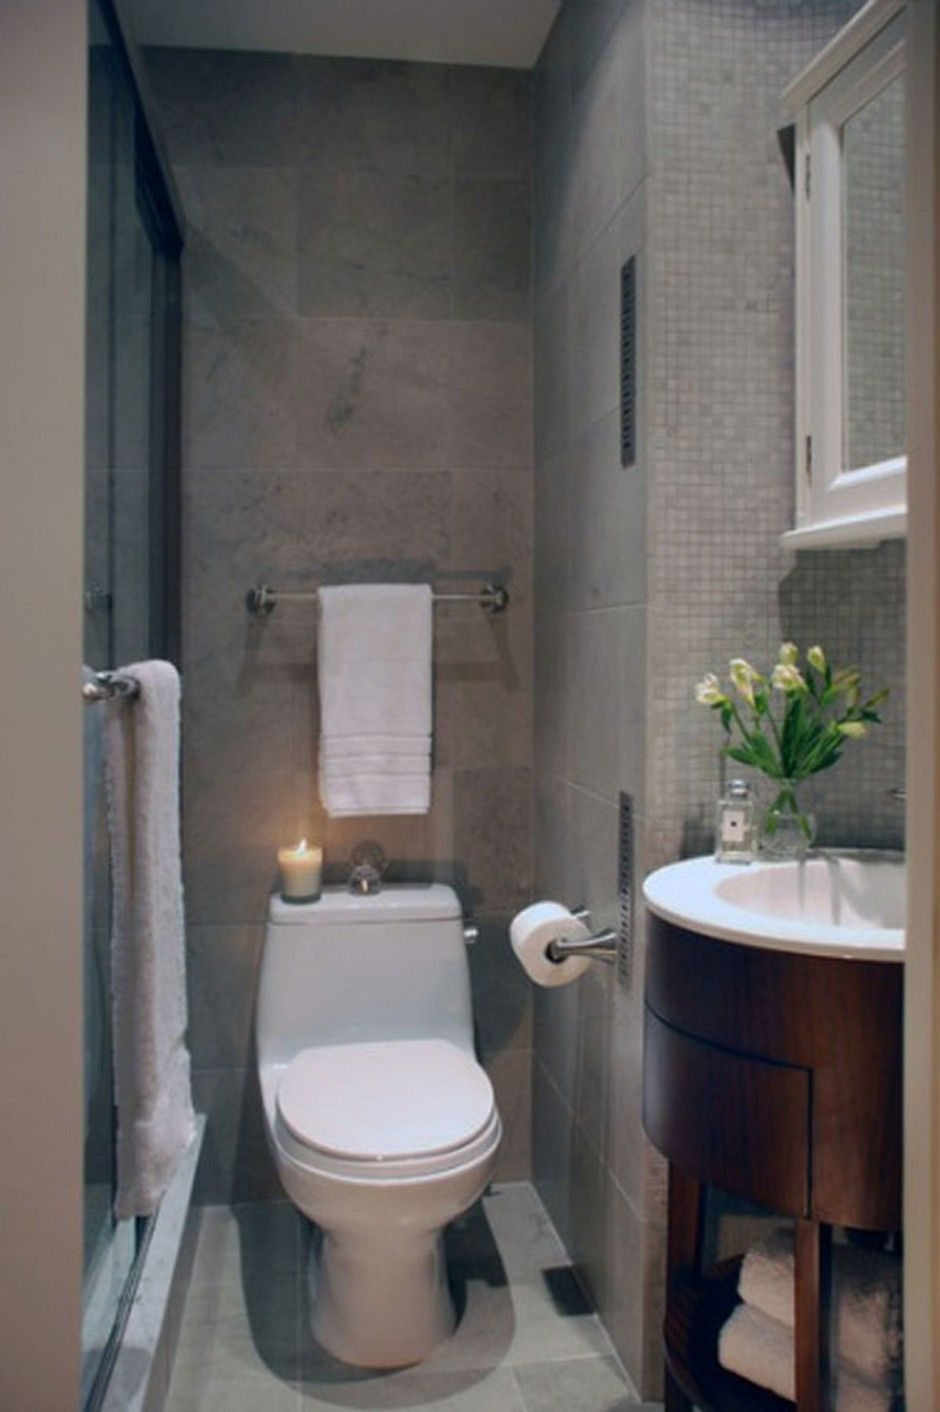 Toilet with built in bidet home design ideas - Small Bathroom Remodel Ideas Designs Good Toilet Ideas Make Your Toilet Captivating And Appealing Using A Little Imaginatio